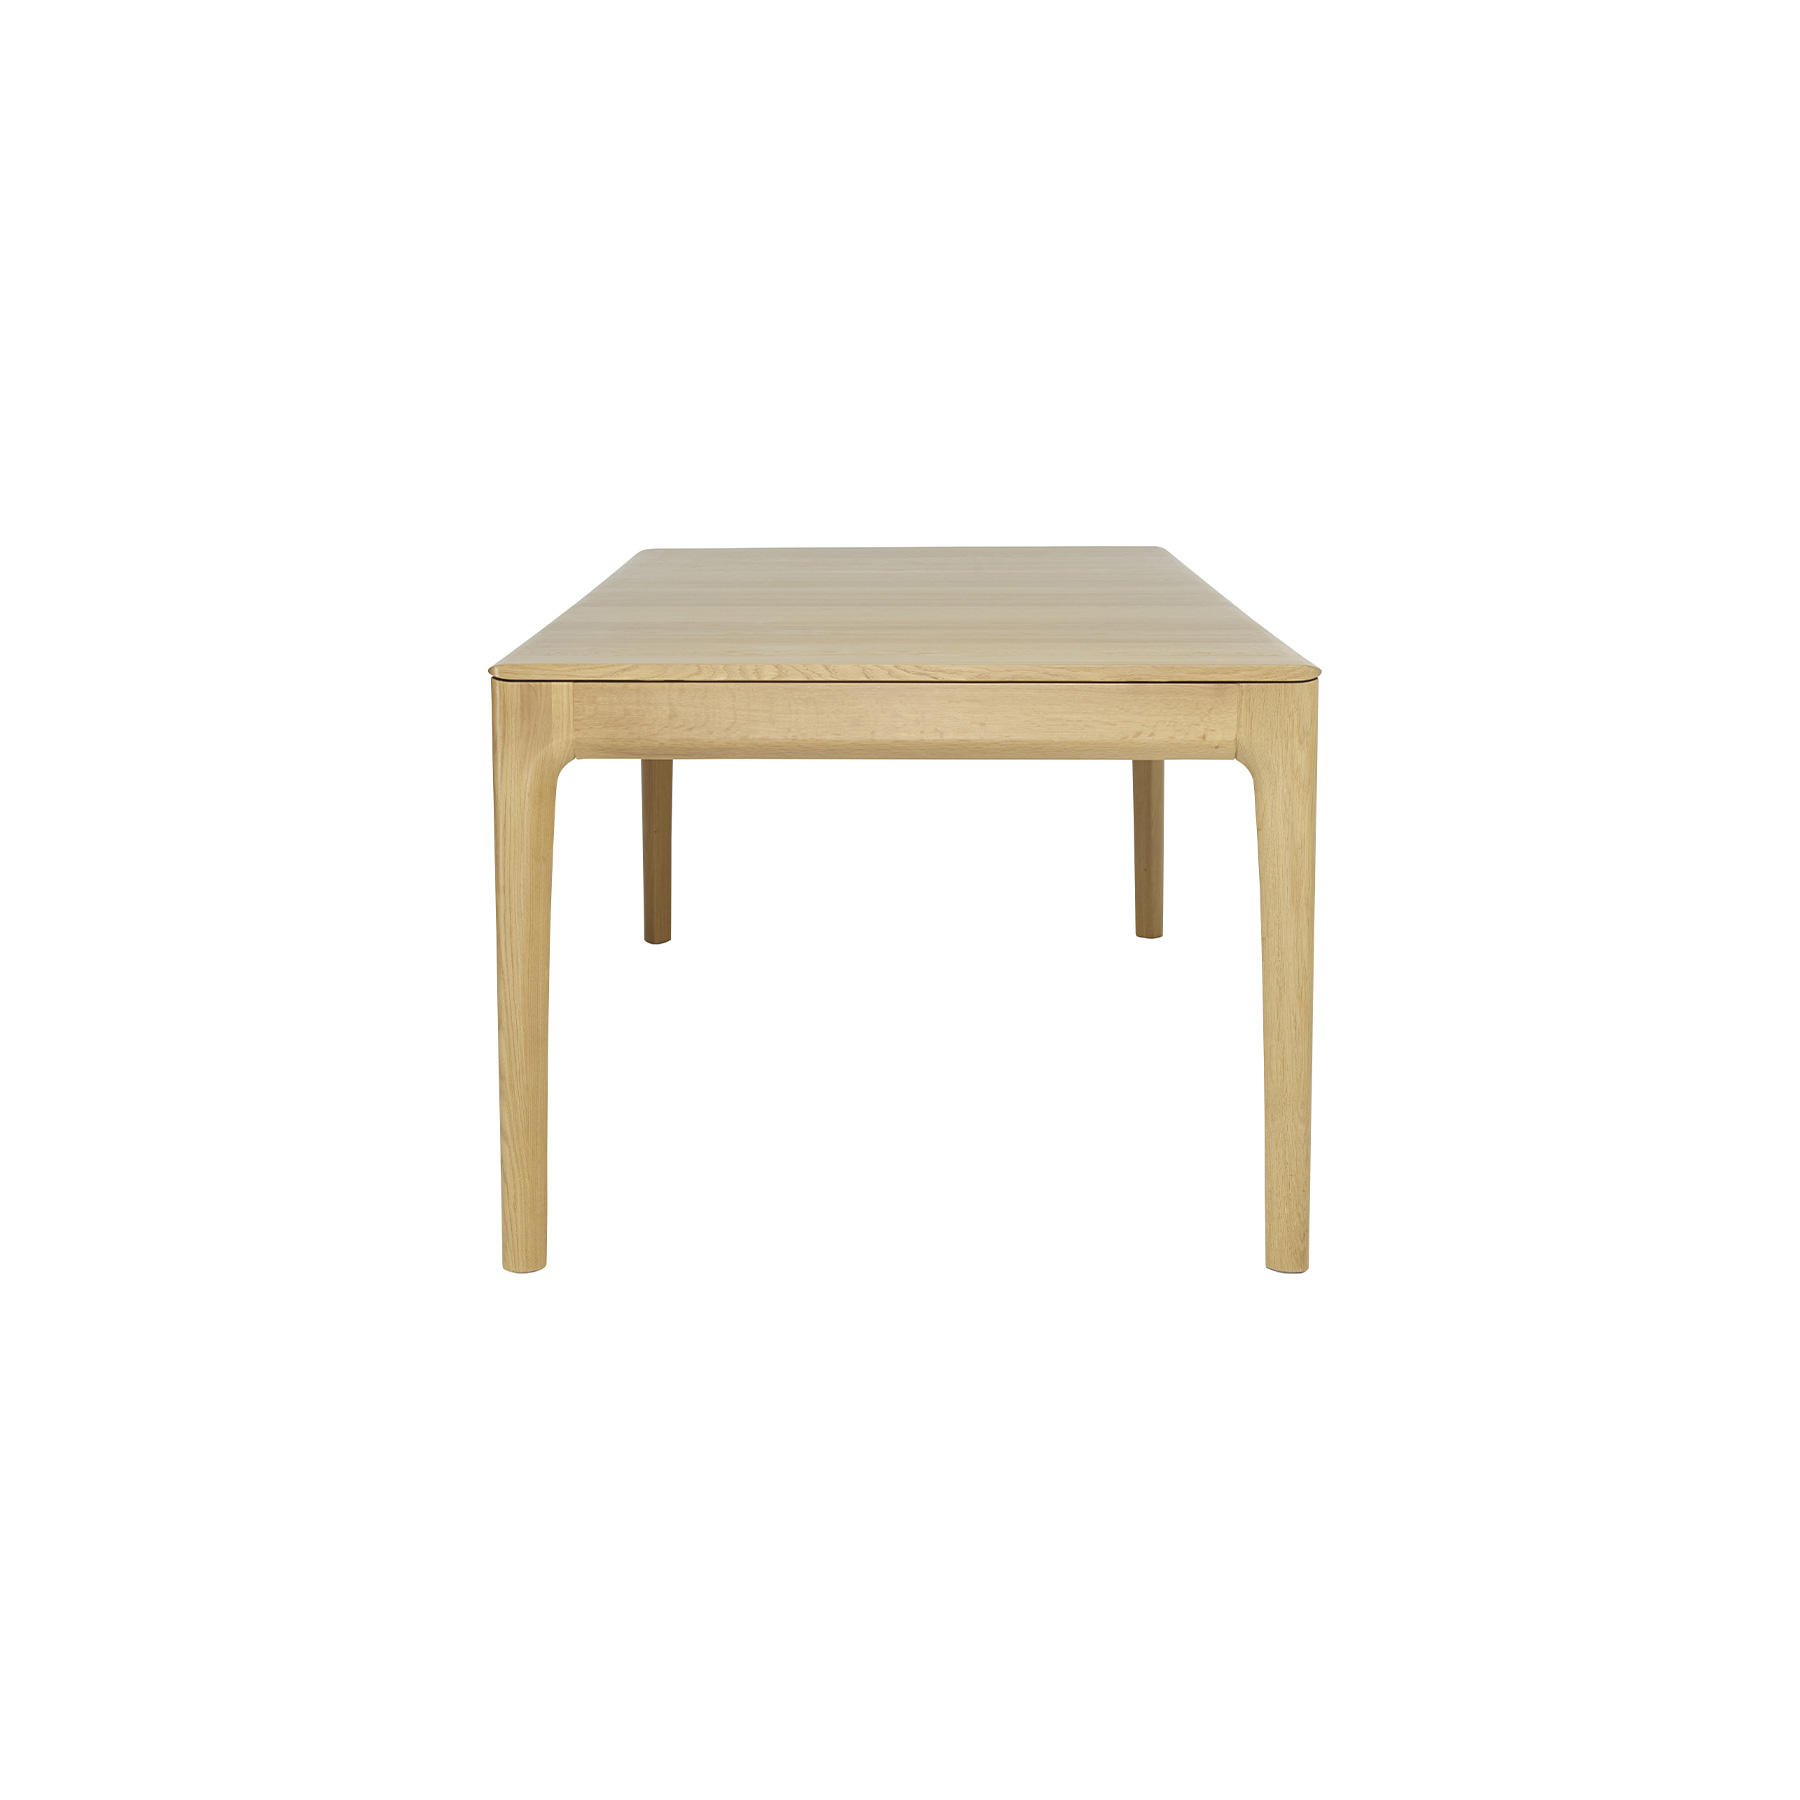 Romana Medium Extendable Table - <p>Romana is a modern dining and living-room furniture collection with soft curves and sophisticated craftsmanship that emphasises Ercol's skill in working with solid timber. Romana is made from pale oak and finished in a clear matt lacquer to both protect the timber and show off its beauty. This dining table seats six when closed and eight when extended.  The table features a reciprocating mechanism – pull on one end to extend and the other end opens at the same time.  The extension leaf is stored within the table as a butterfly mechanism – it is simply flipped open into place.<br /> Wood finishes and colour samples are shown for guidance only as screen colours may vary. We would recommend ordering a sample in your chosen finish. However, wood is a natural material and varies in colour, grain and structure.</p>    Matter of Stuff